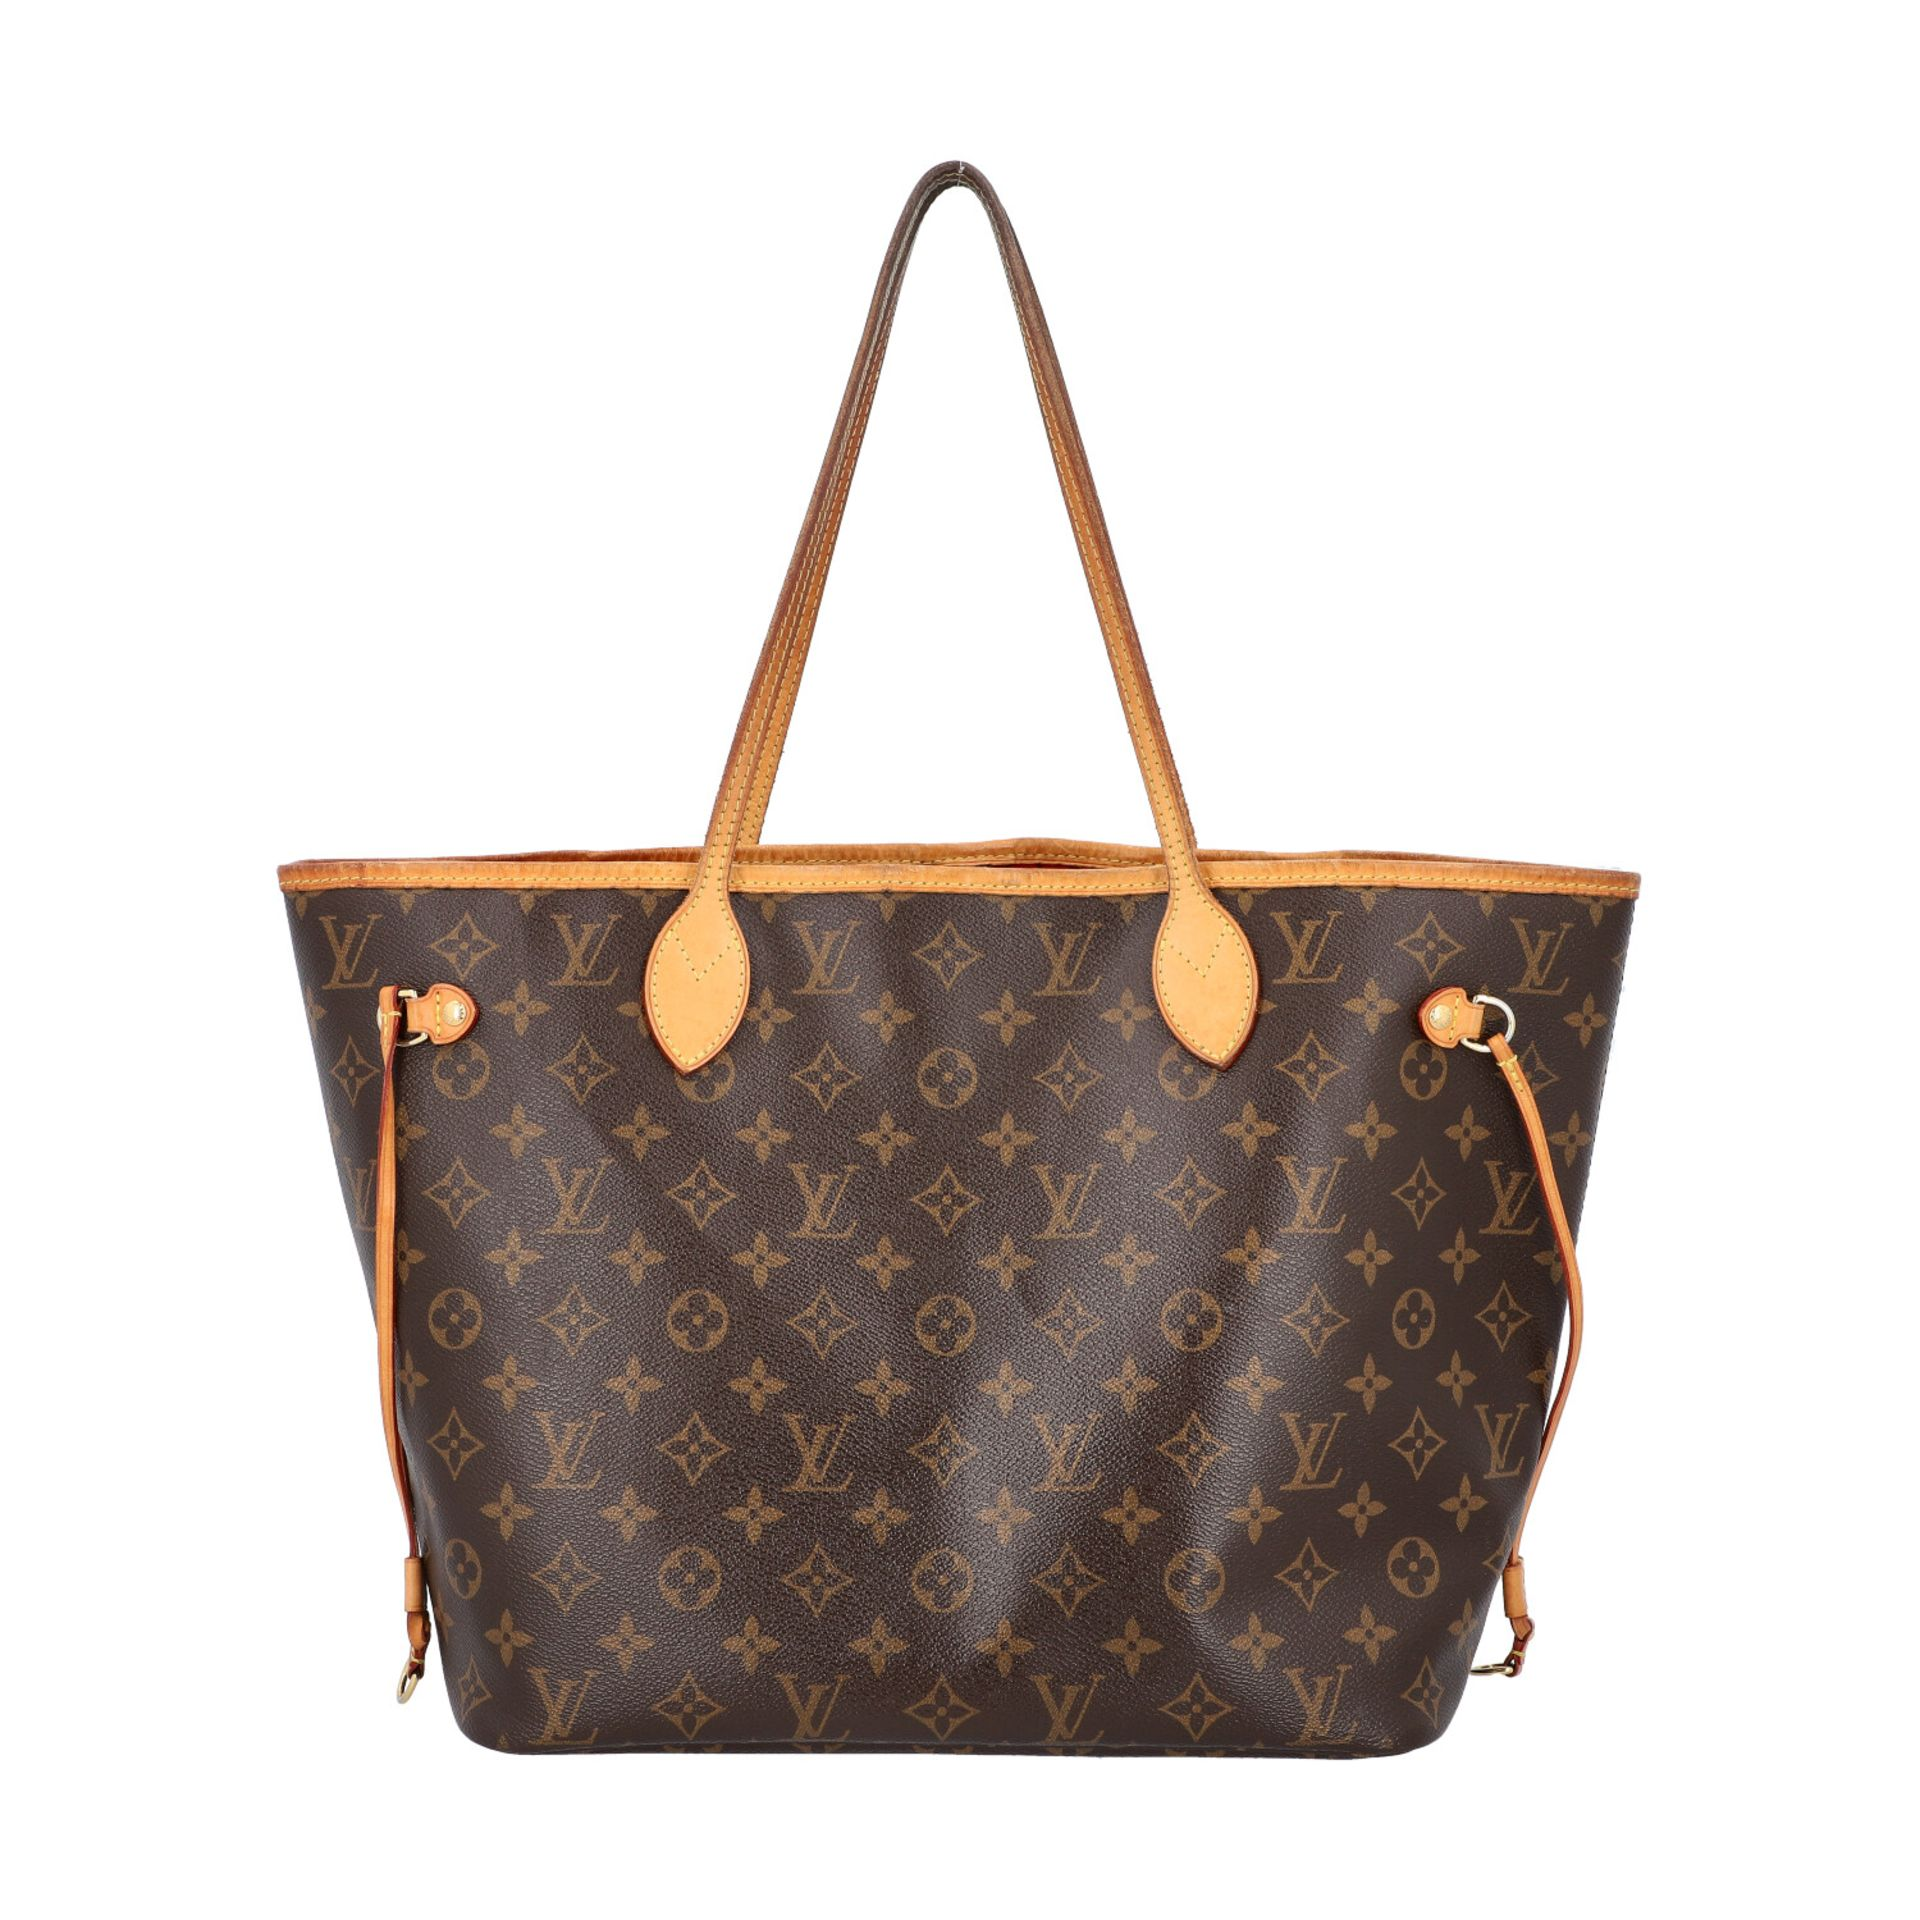 "LOUIS VUITTON Shoppertasche ""NEVERFULL MM"", Koll. 2014. Akt. NP.: 1150,-€. Monogram - Image 4 of 8"